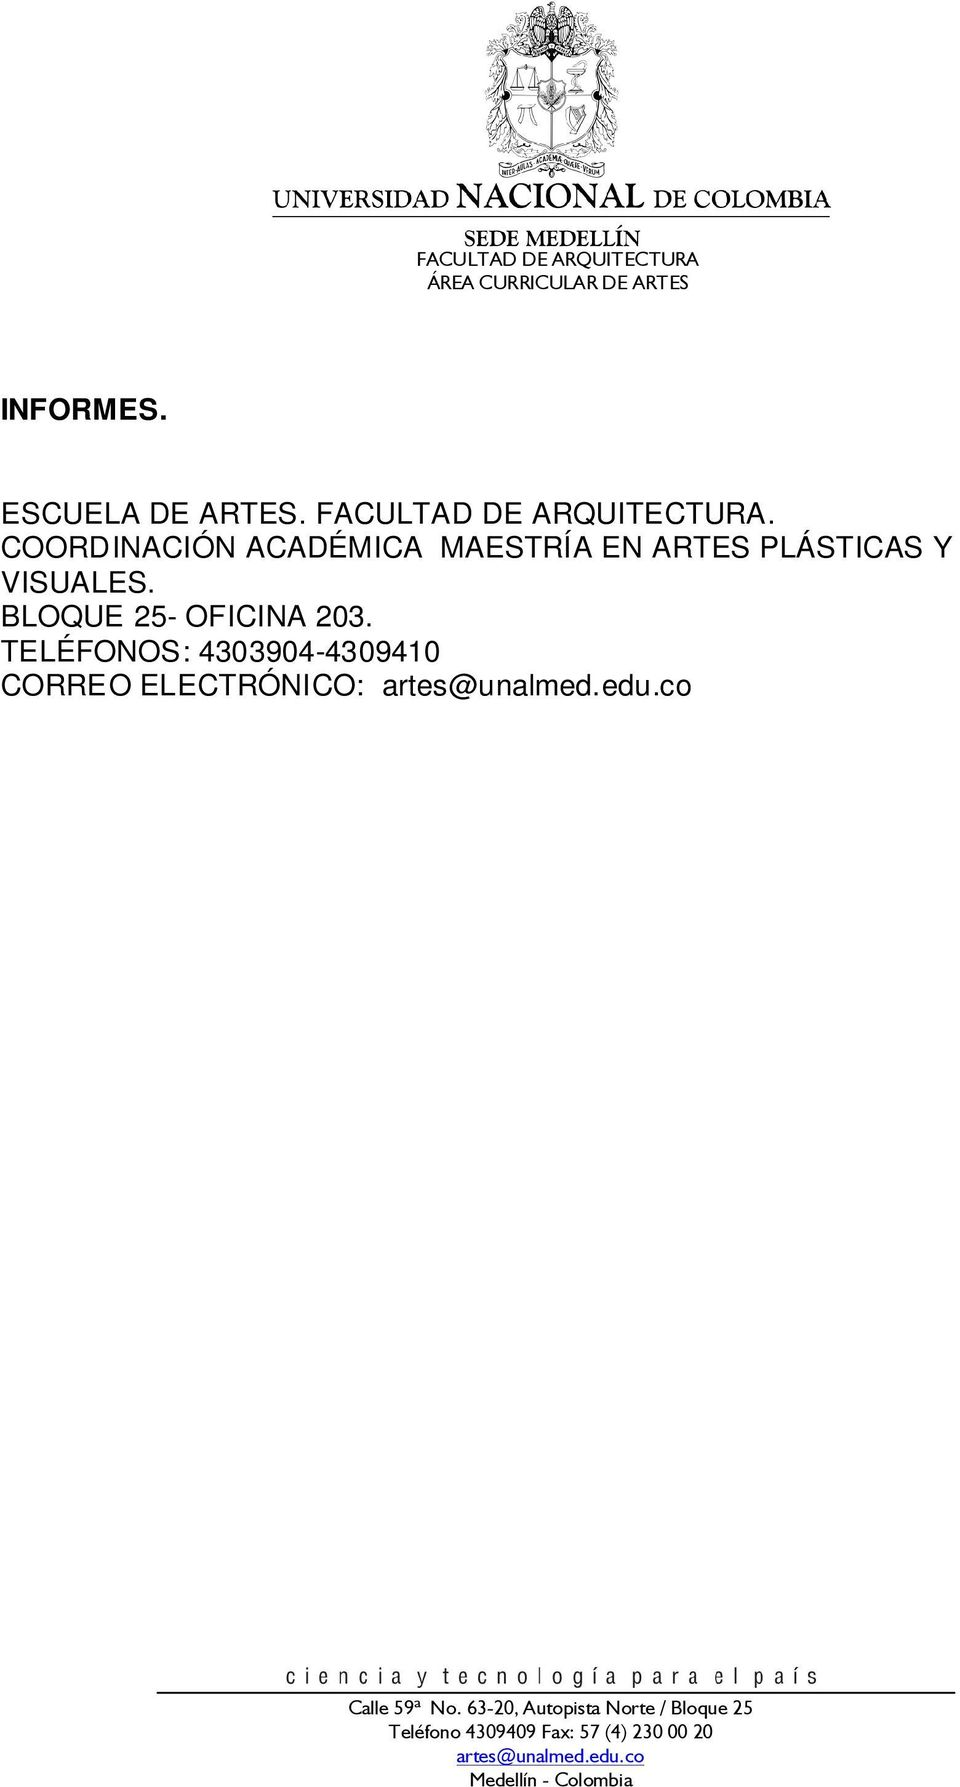 VISUALES. BLOQUE 25- OFICINA 203.